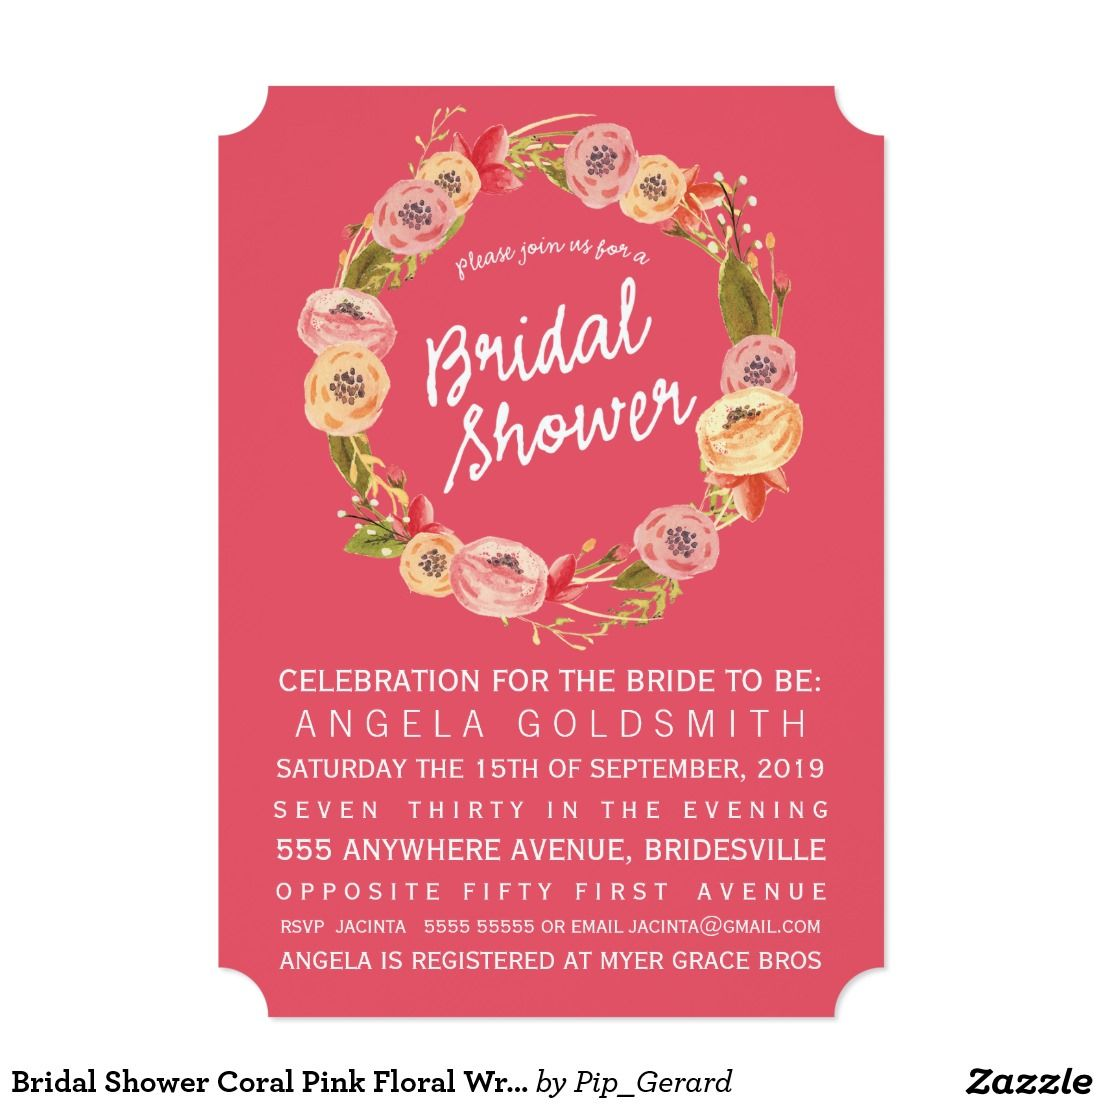 Bridal Shower Coral Pink Floral Wreath Invite | WEDDING: WREATH ...